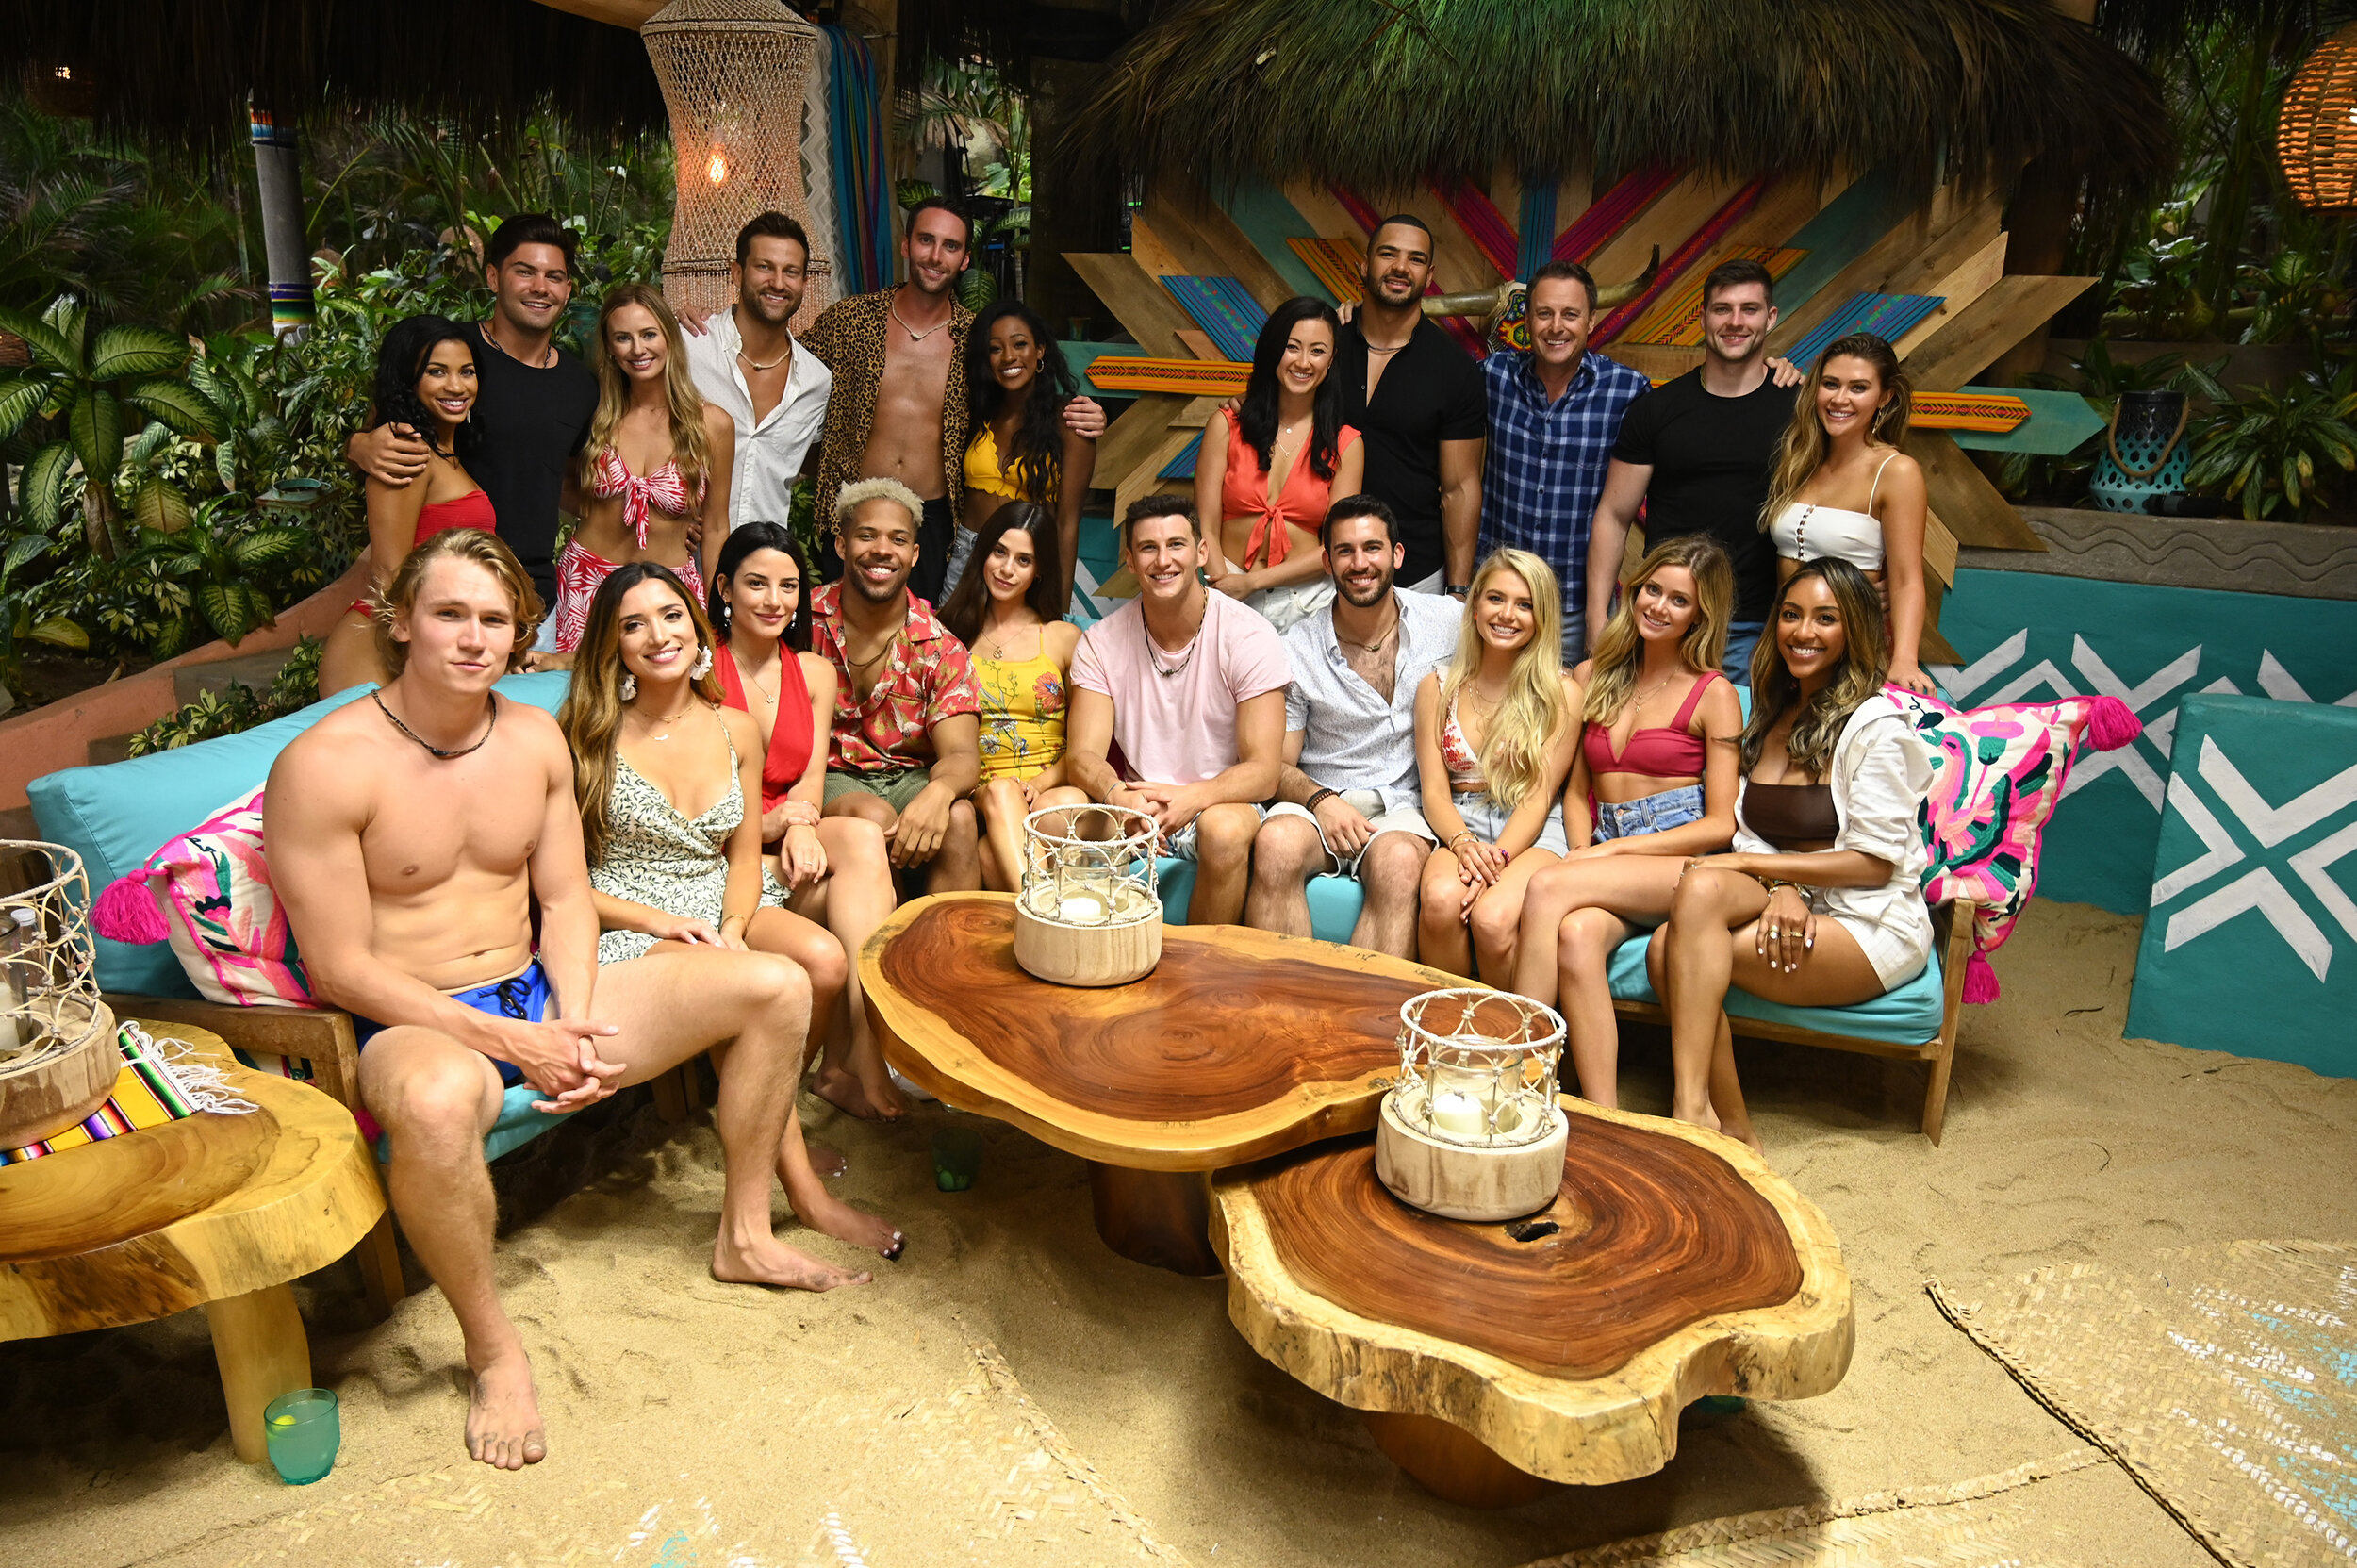 Jones (front row, far left) with the cast of Bachelor in Paradise Season 6